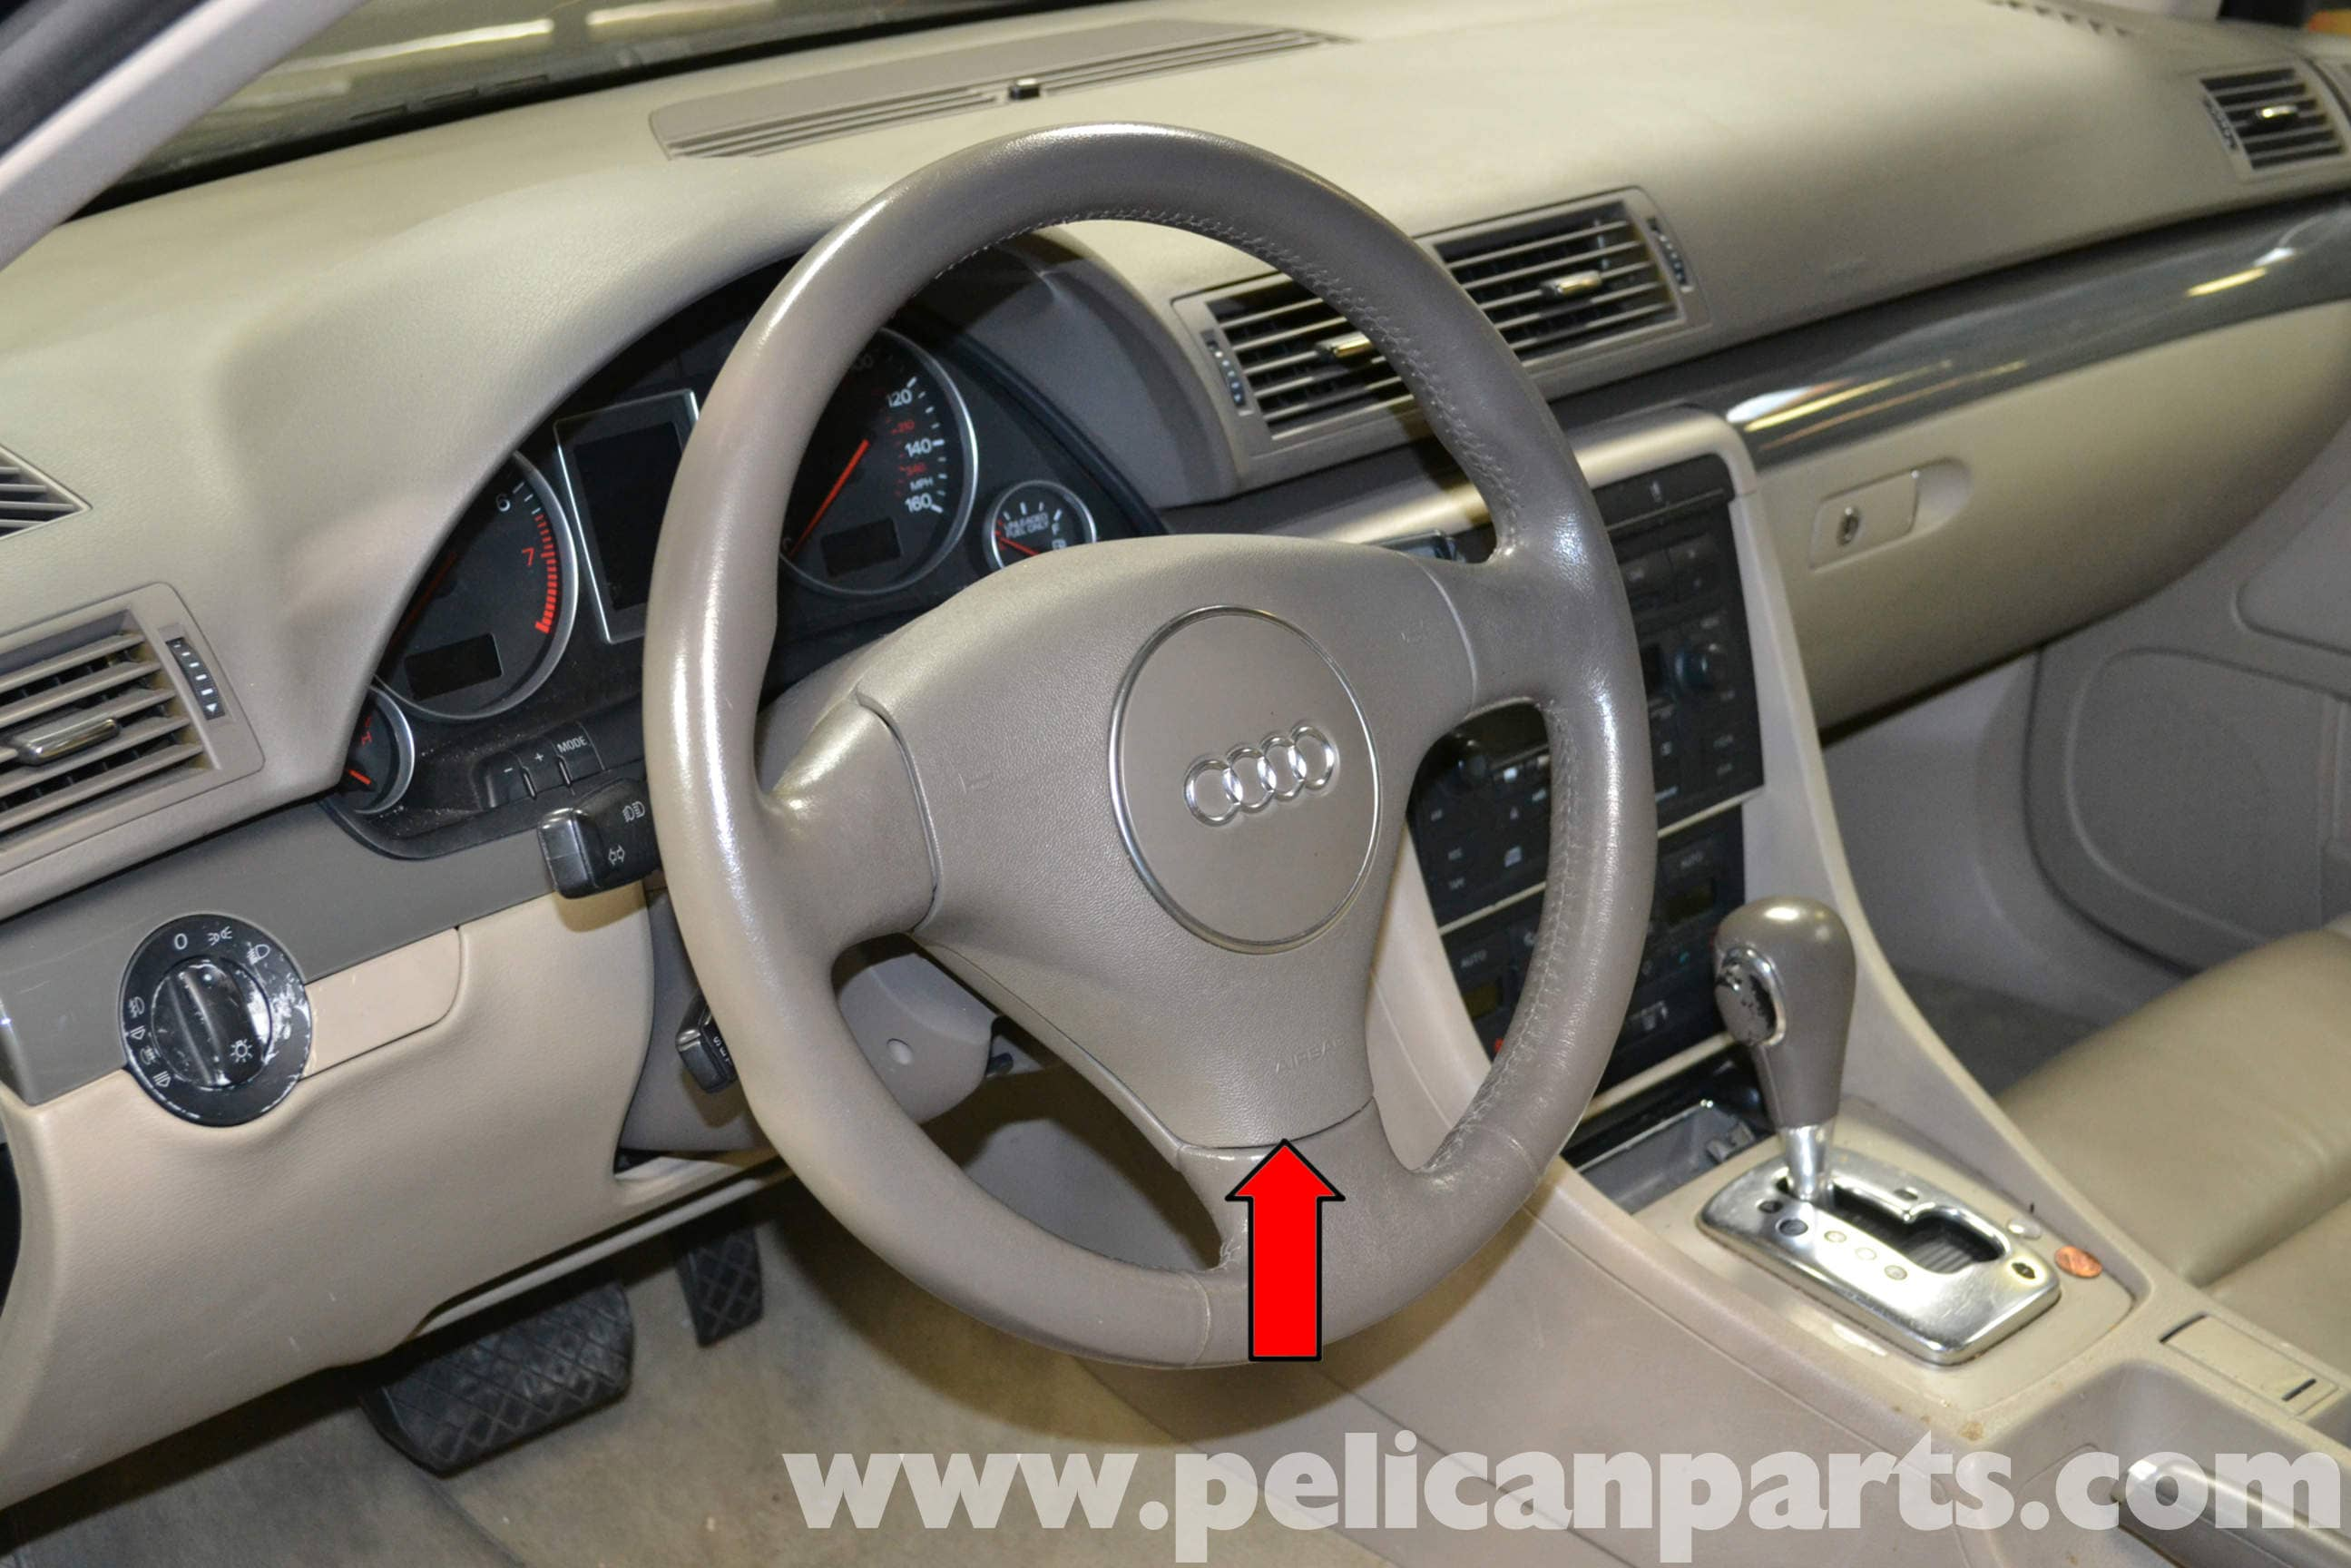 Large Image | Extra-Large Image · With the steering wheel ...